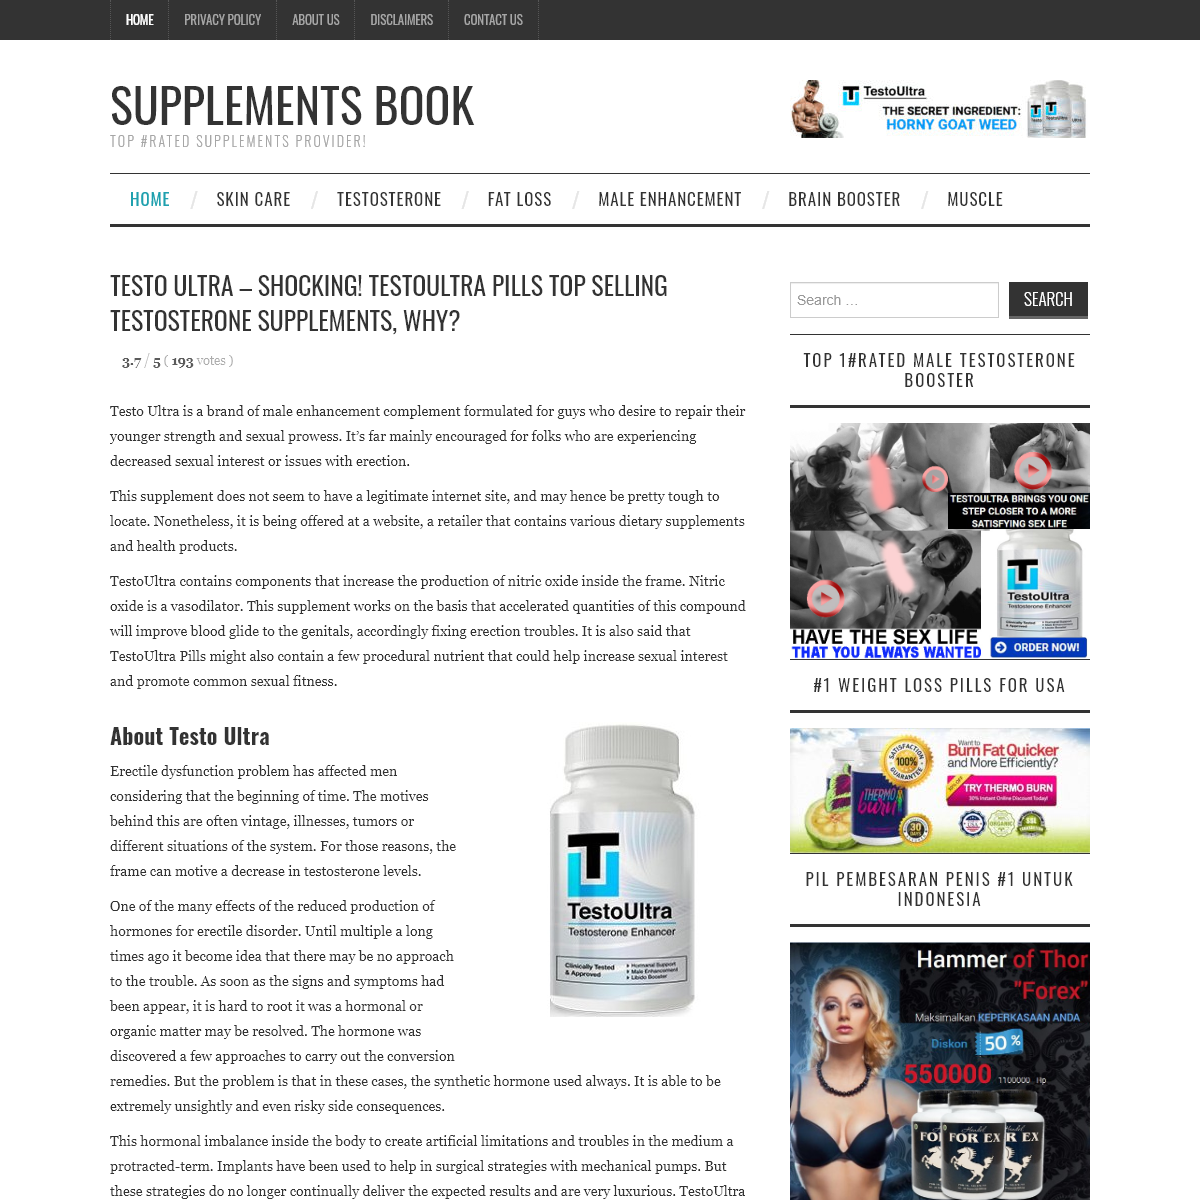 Testo Ultra - Shocking! Testoultra Pills Top Selling Supplements, Why-